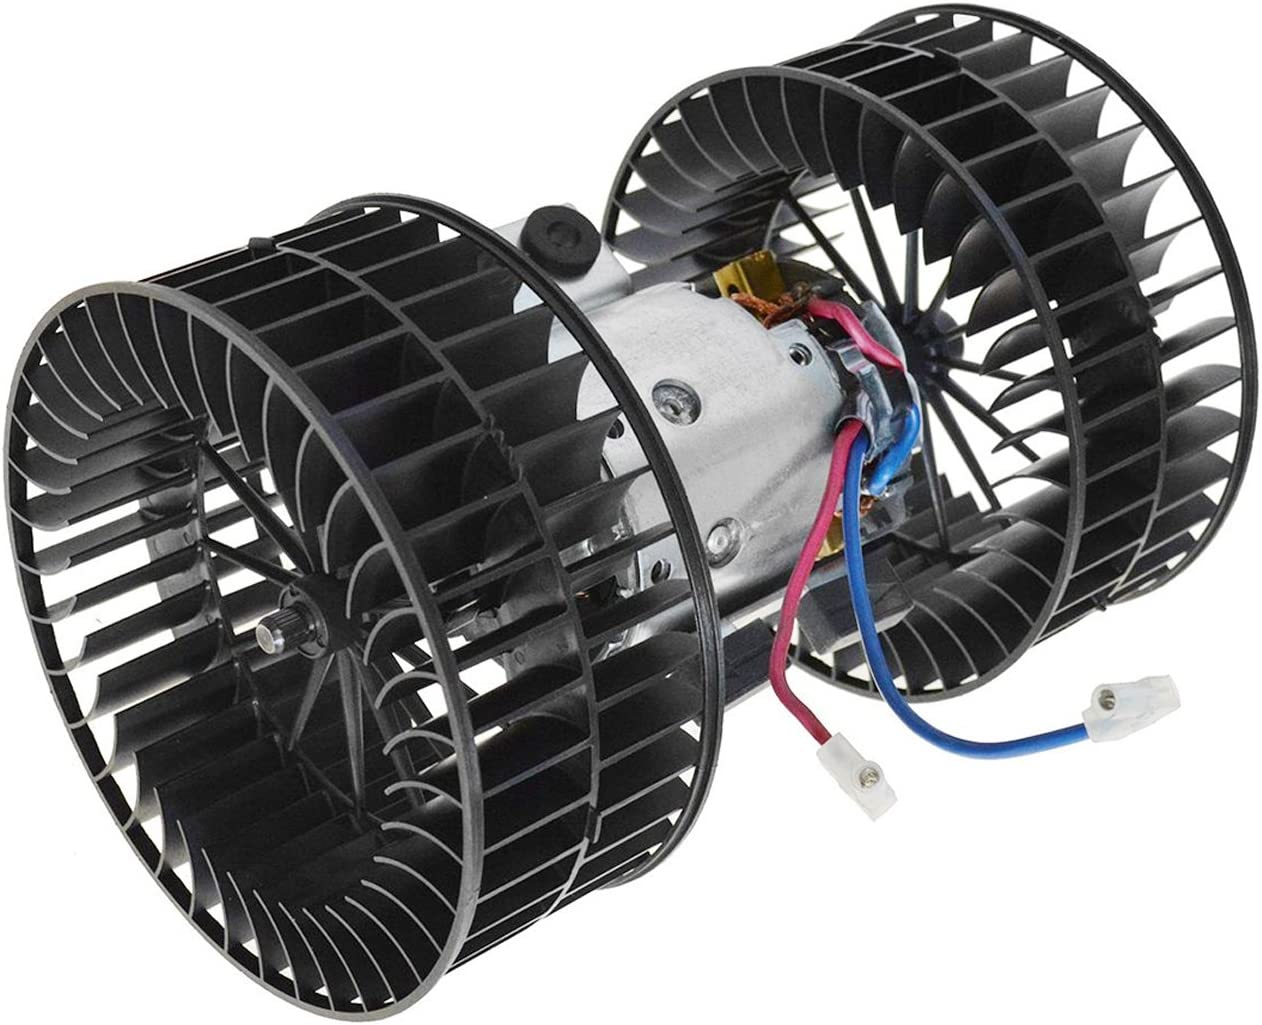 TOPAZ 64118391809 Front Heater Blower Motor with Dual Fan Cage for BMW E38 740i 740iL 750iL 1995-2001